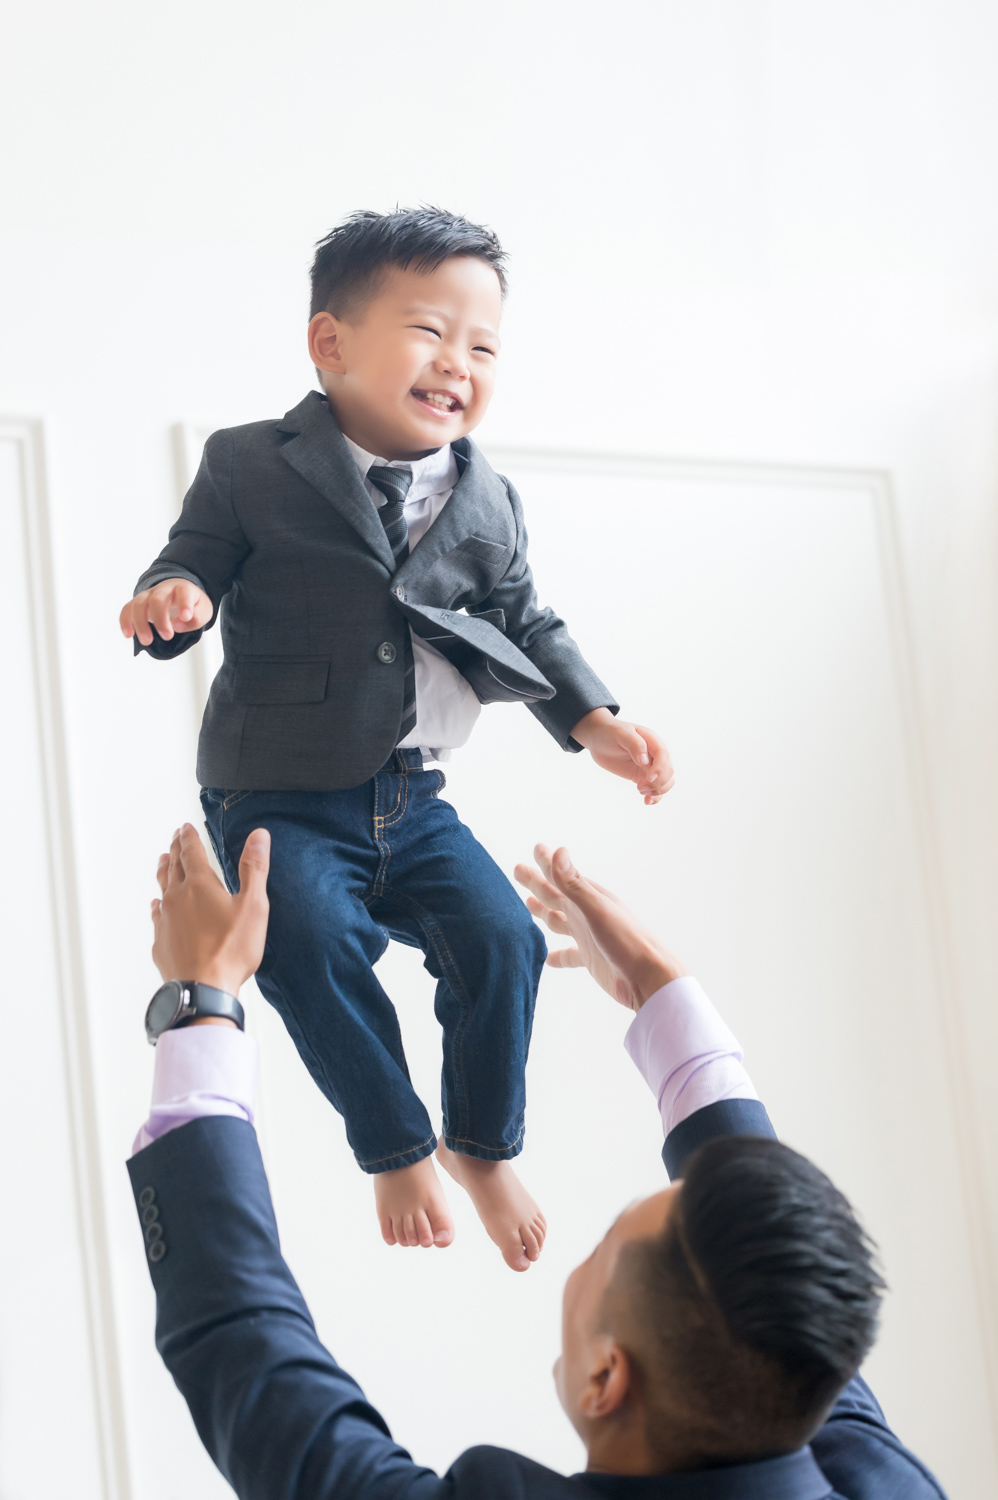 Father throws son in the air during a family photoshoot.